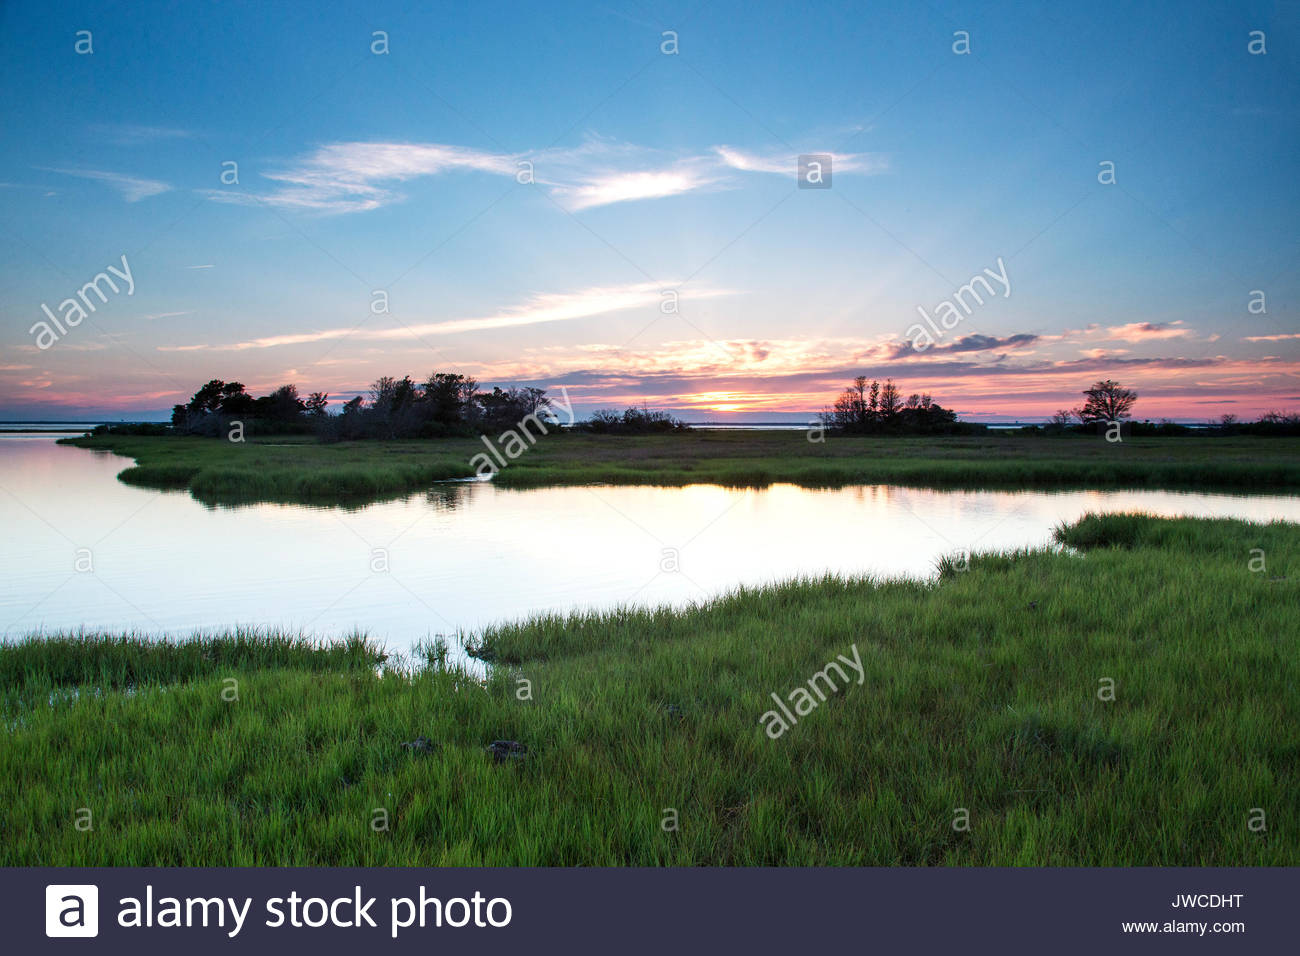 Evening colors fade over a marsh. - Stock Image